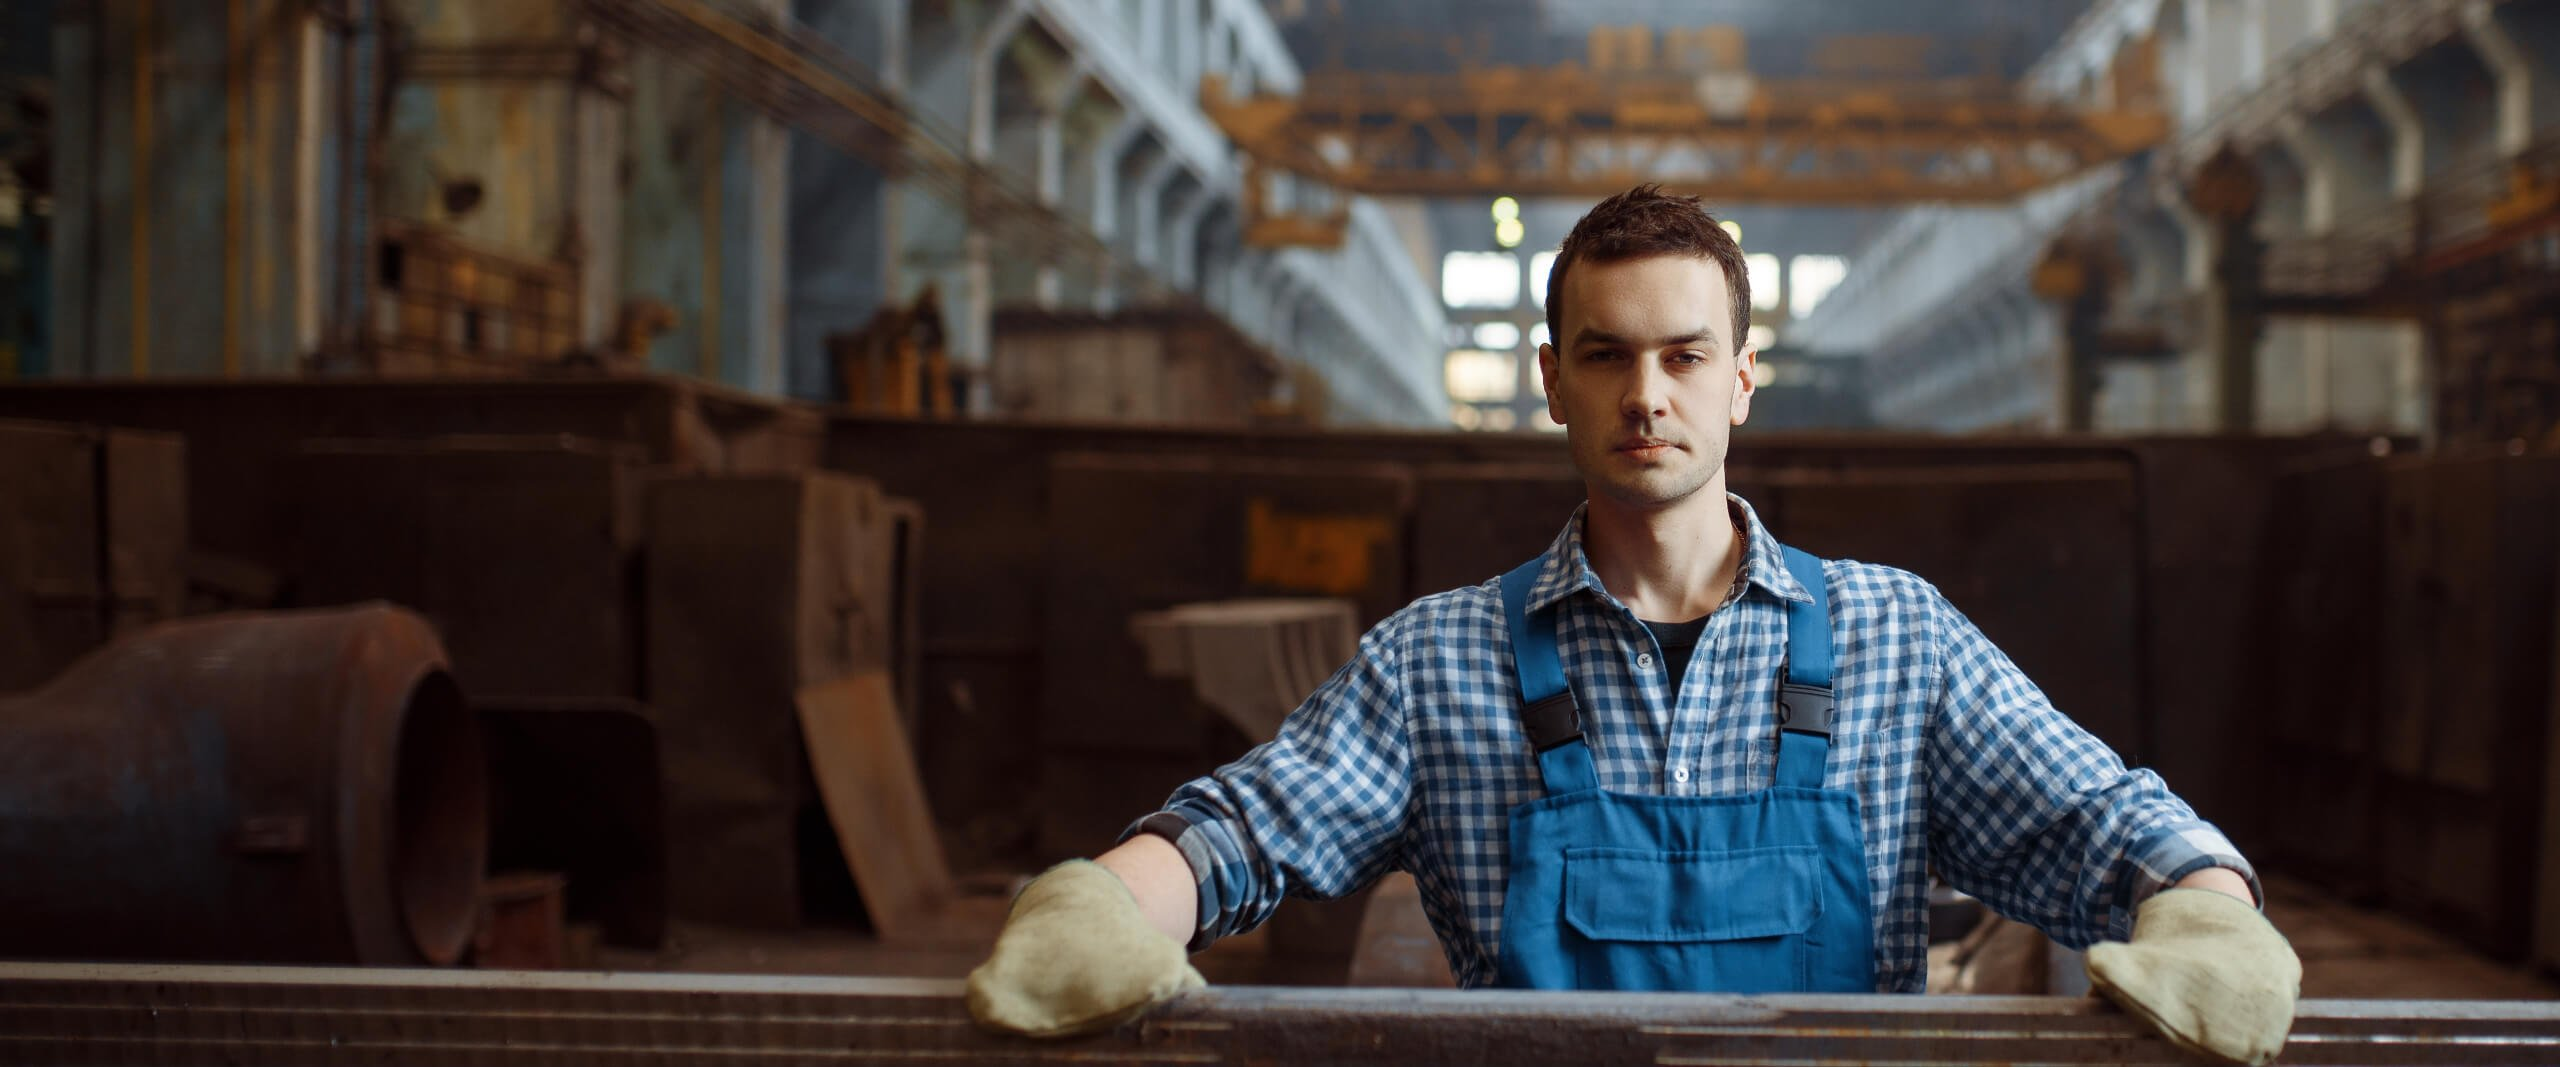 Industrial ship builder wearing blue overalls poses for the camera in a factory setting